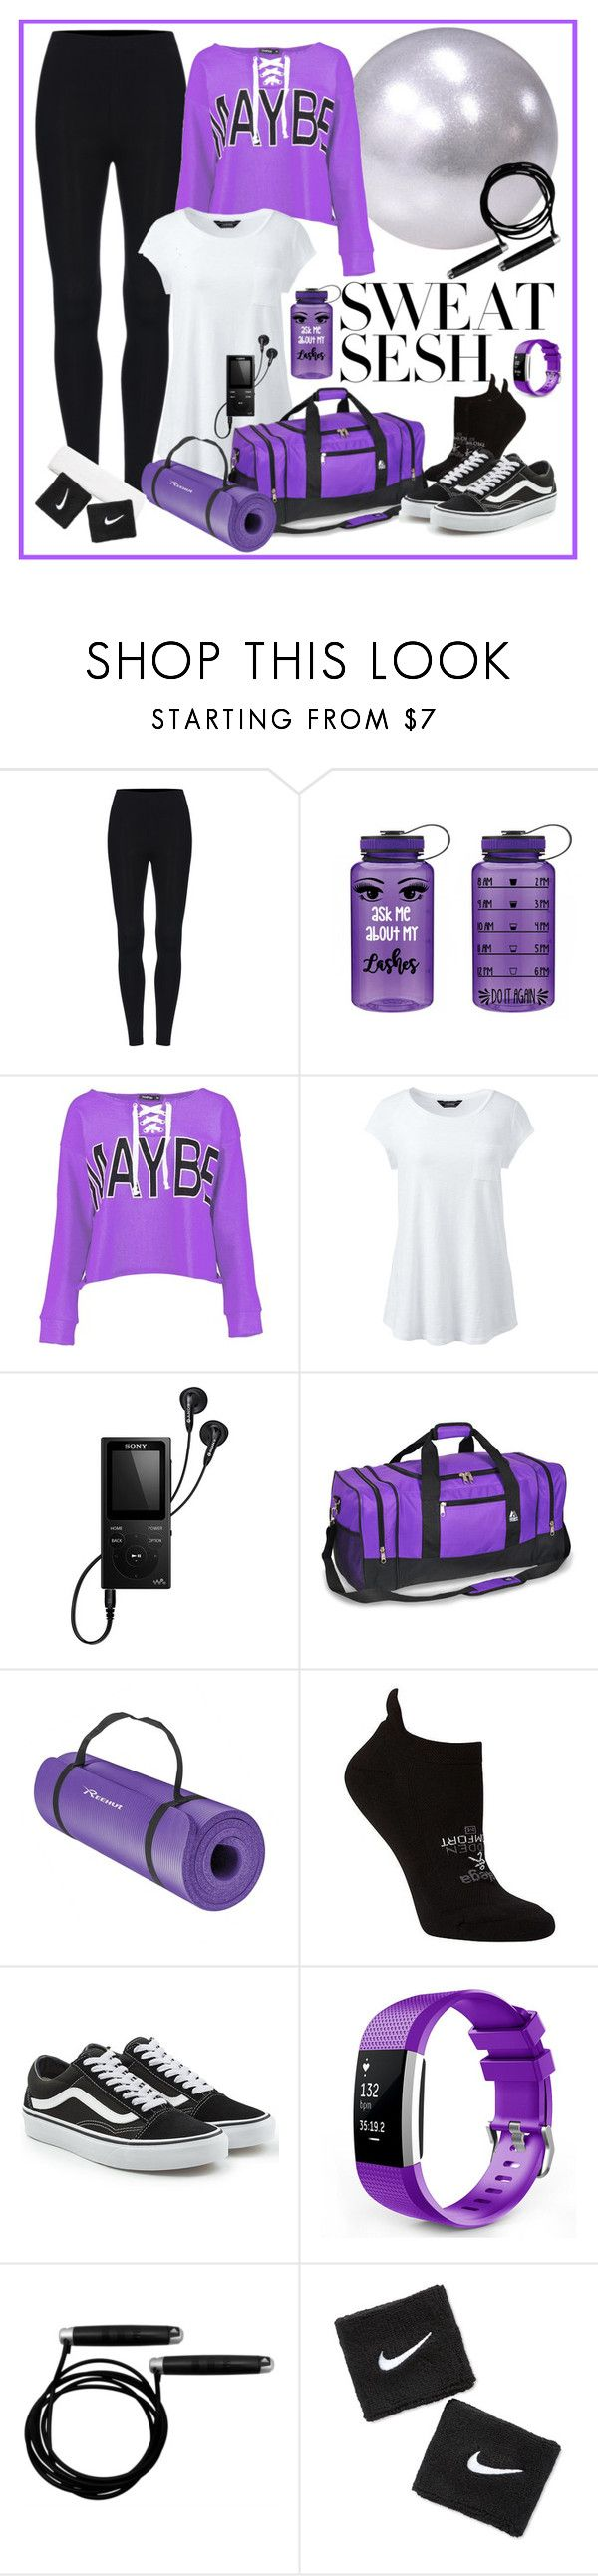 """""""Purple Sweat Sesh"""" by pheonix-dt ❤ liked on Polyvore featuring Boohoo, Lands' End, Sony, Everest, Balega, Vans, adidas, NIKE and plus size clothing"""